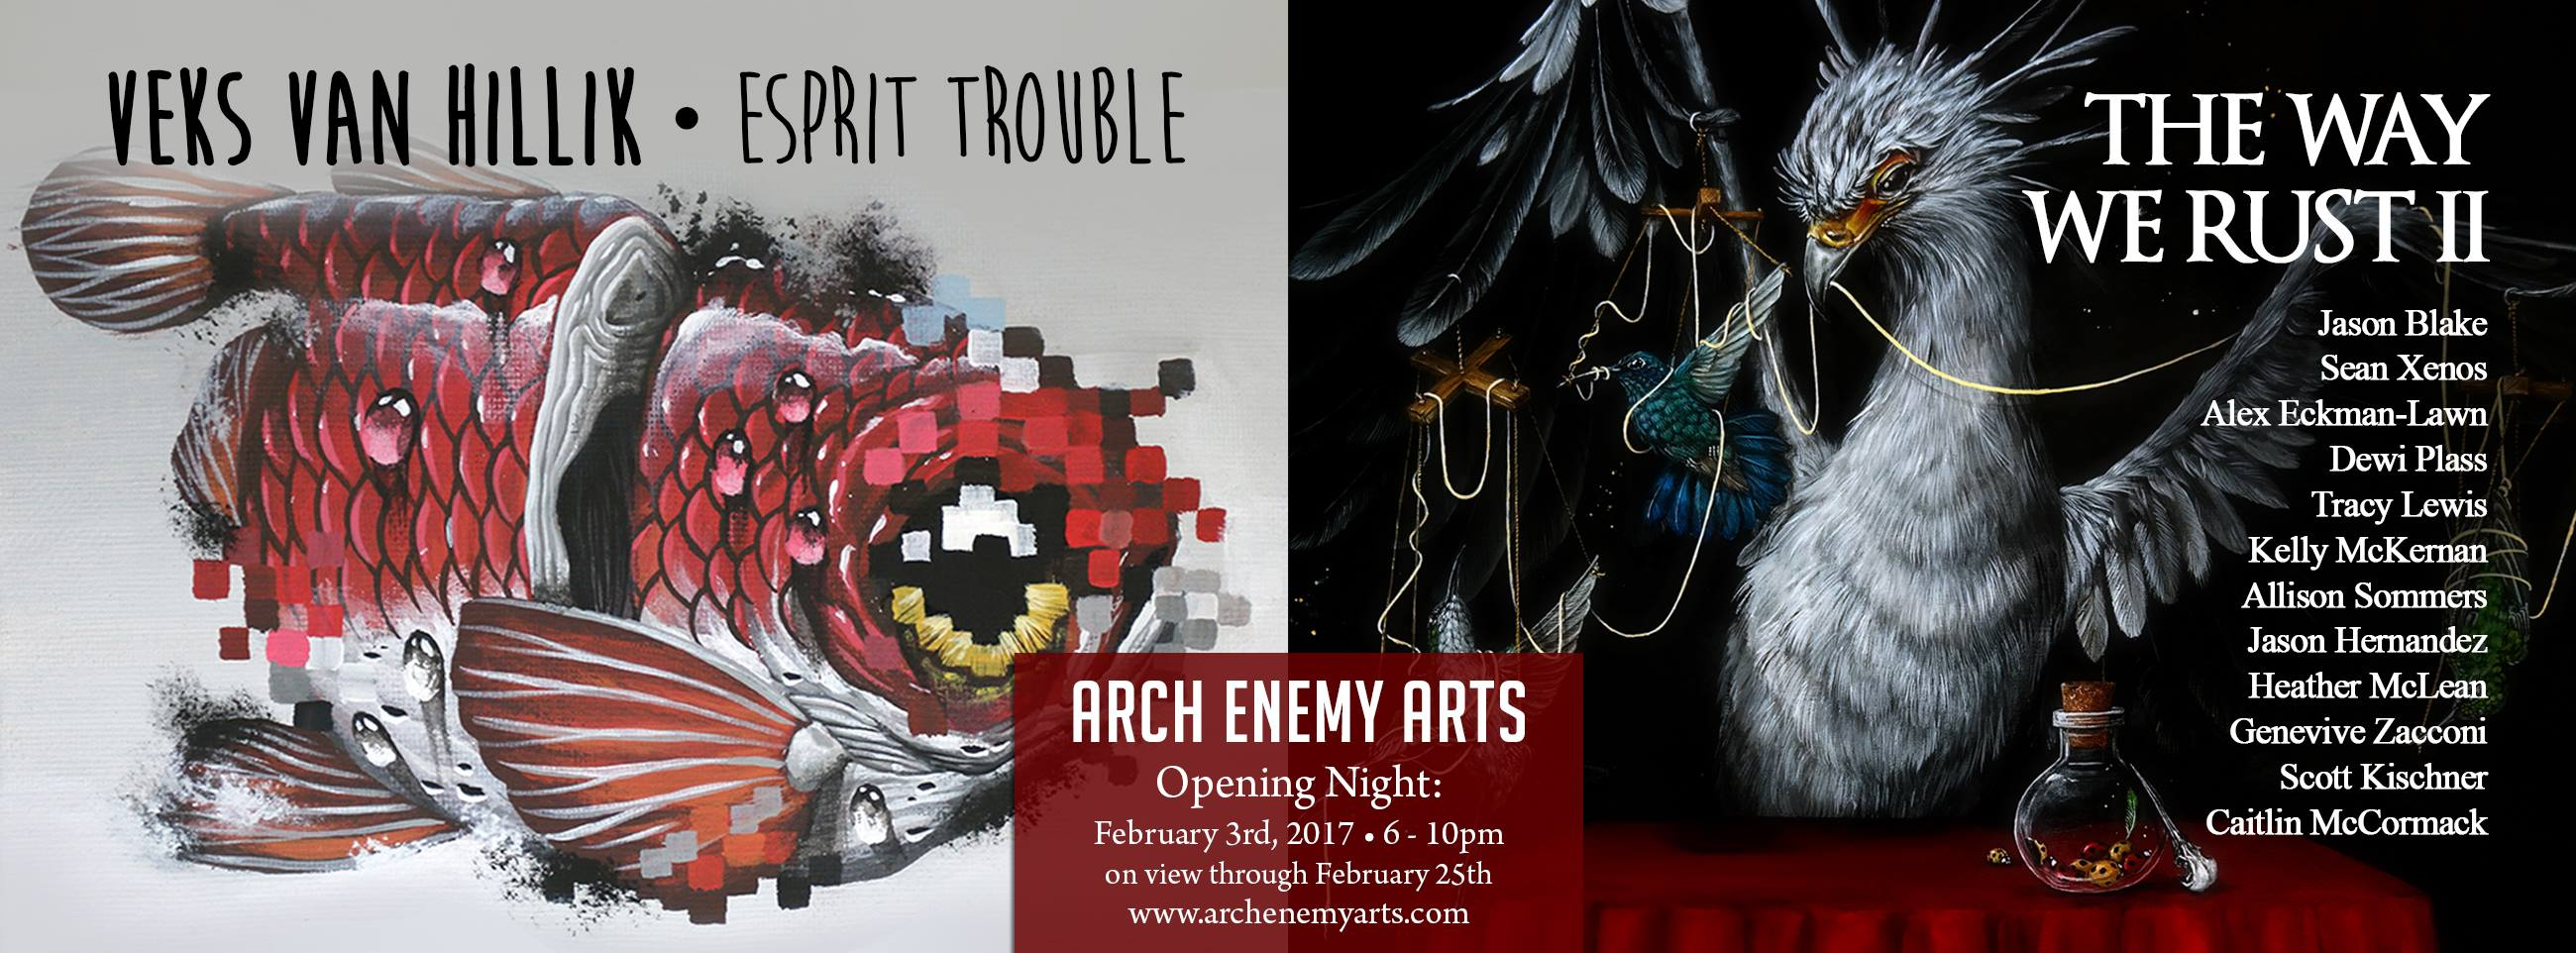 The Way We Rust II @ Arch Enemy Arts, opening February 3rd 2017